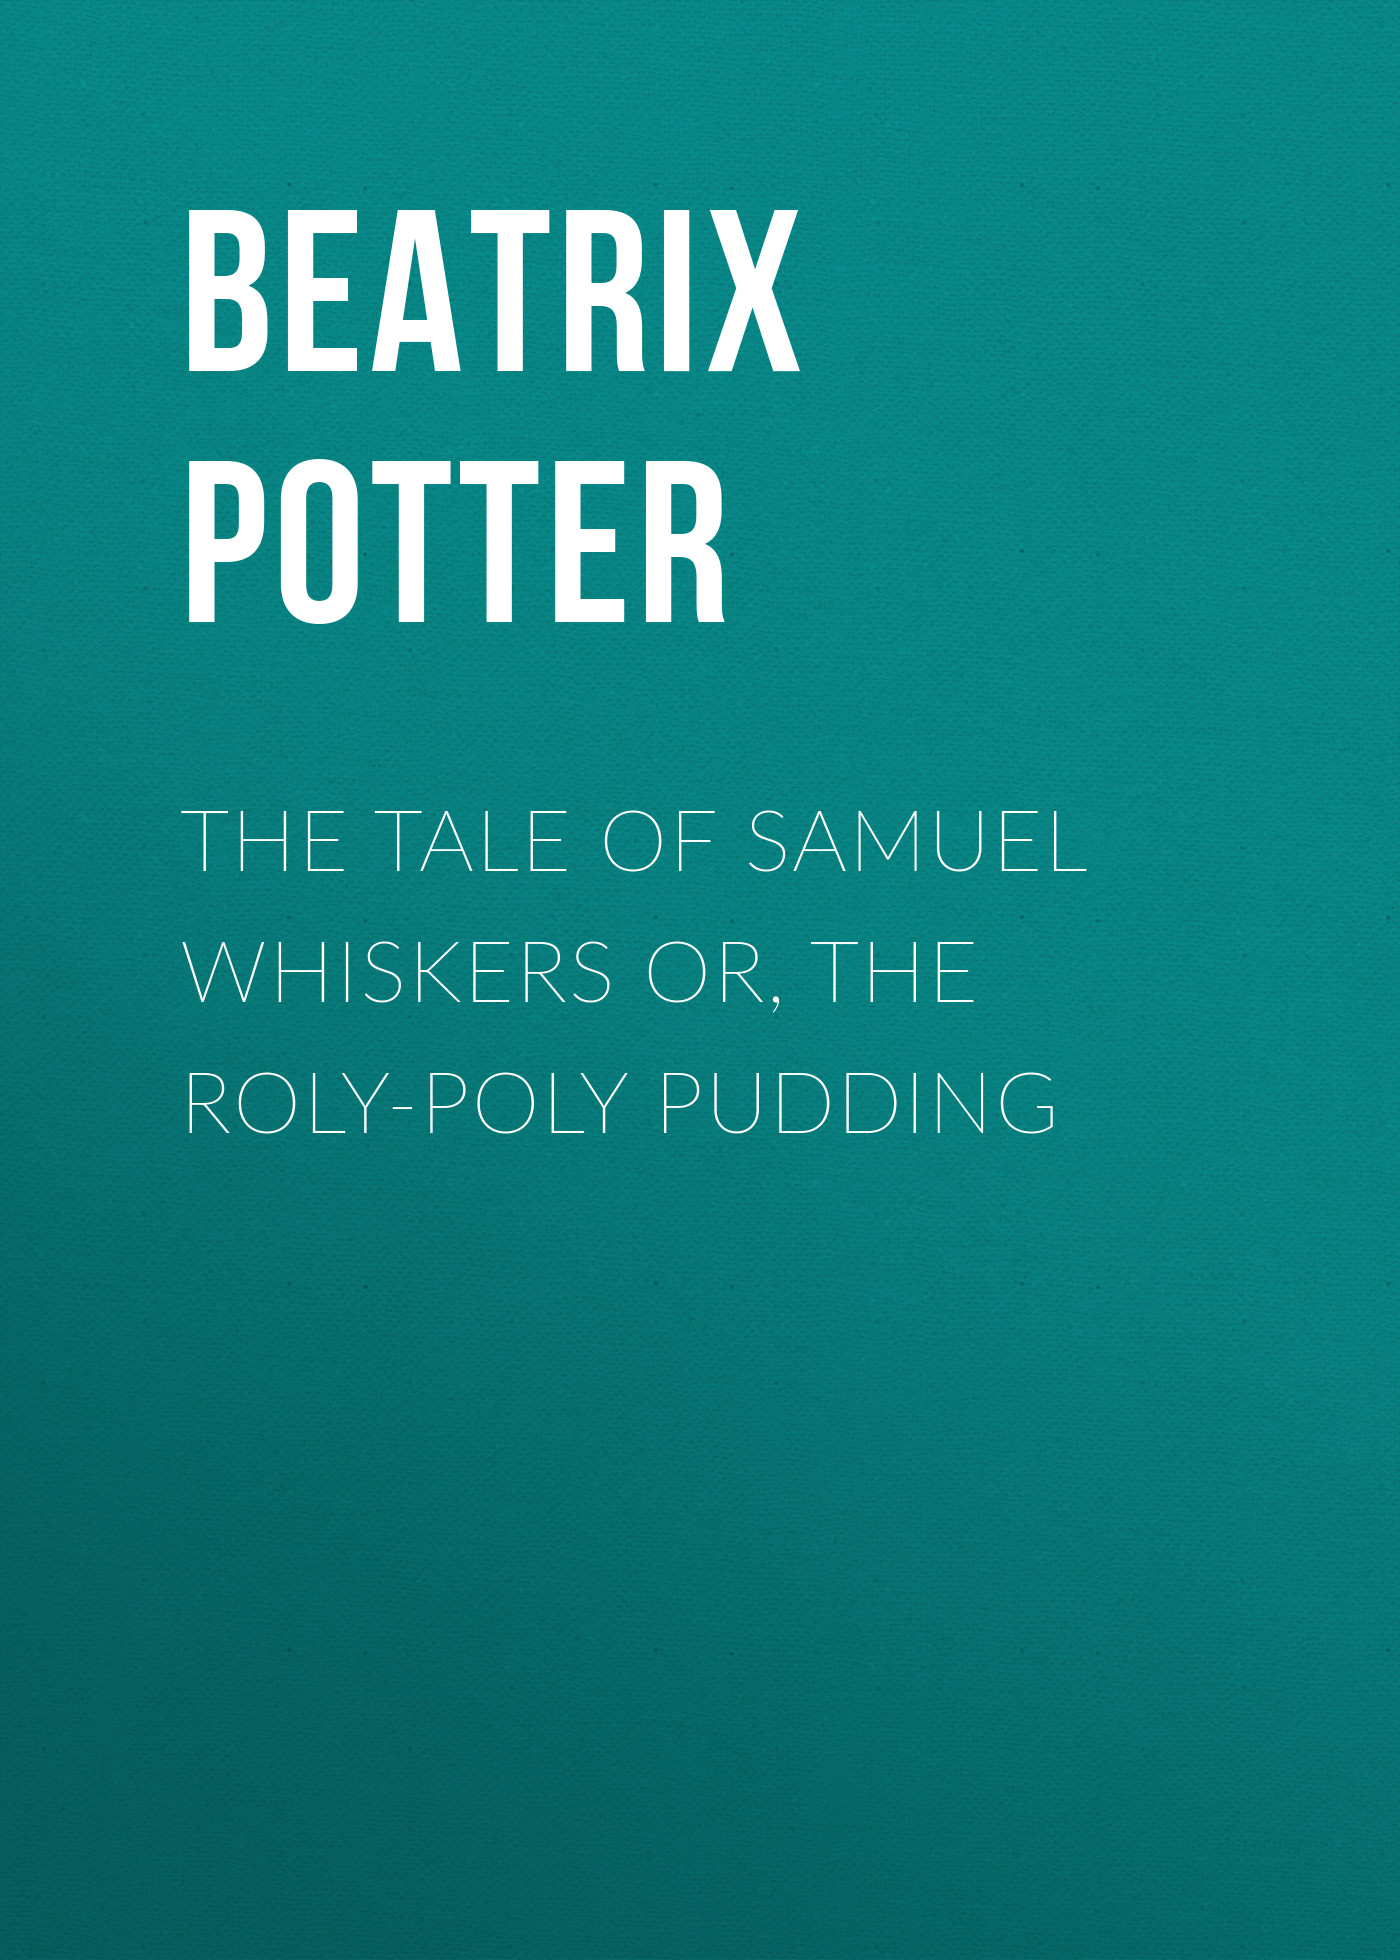 Беатрис Поттер The Tale of Samuel Whiskers or, The Roly-Poly Pudding мяч попрыгунч mondo минни 45 см